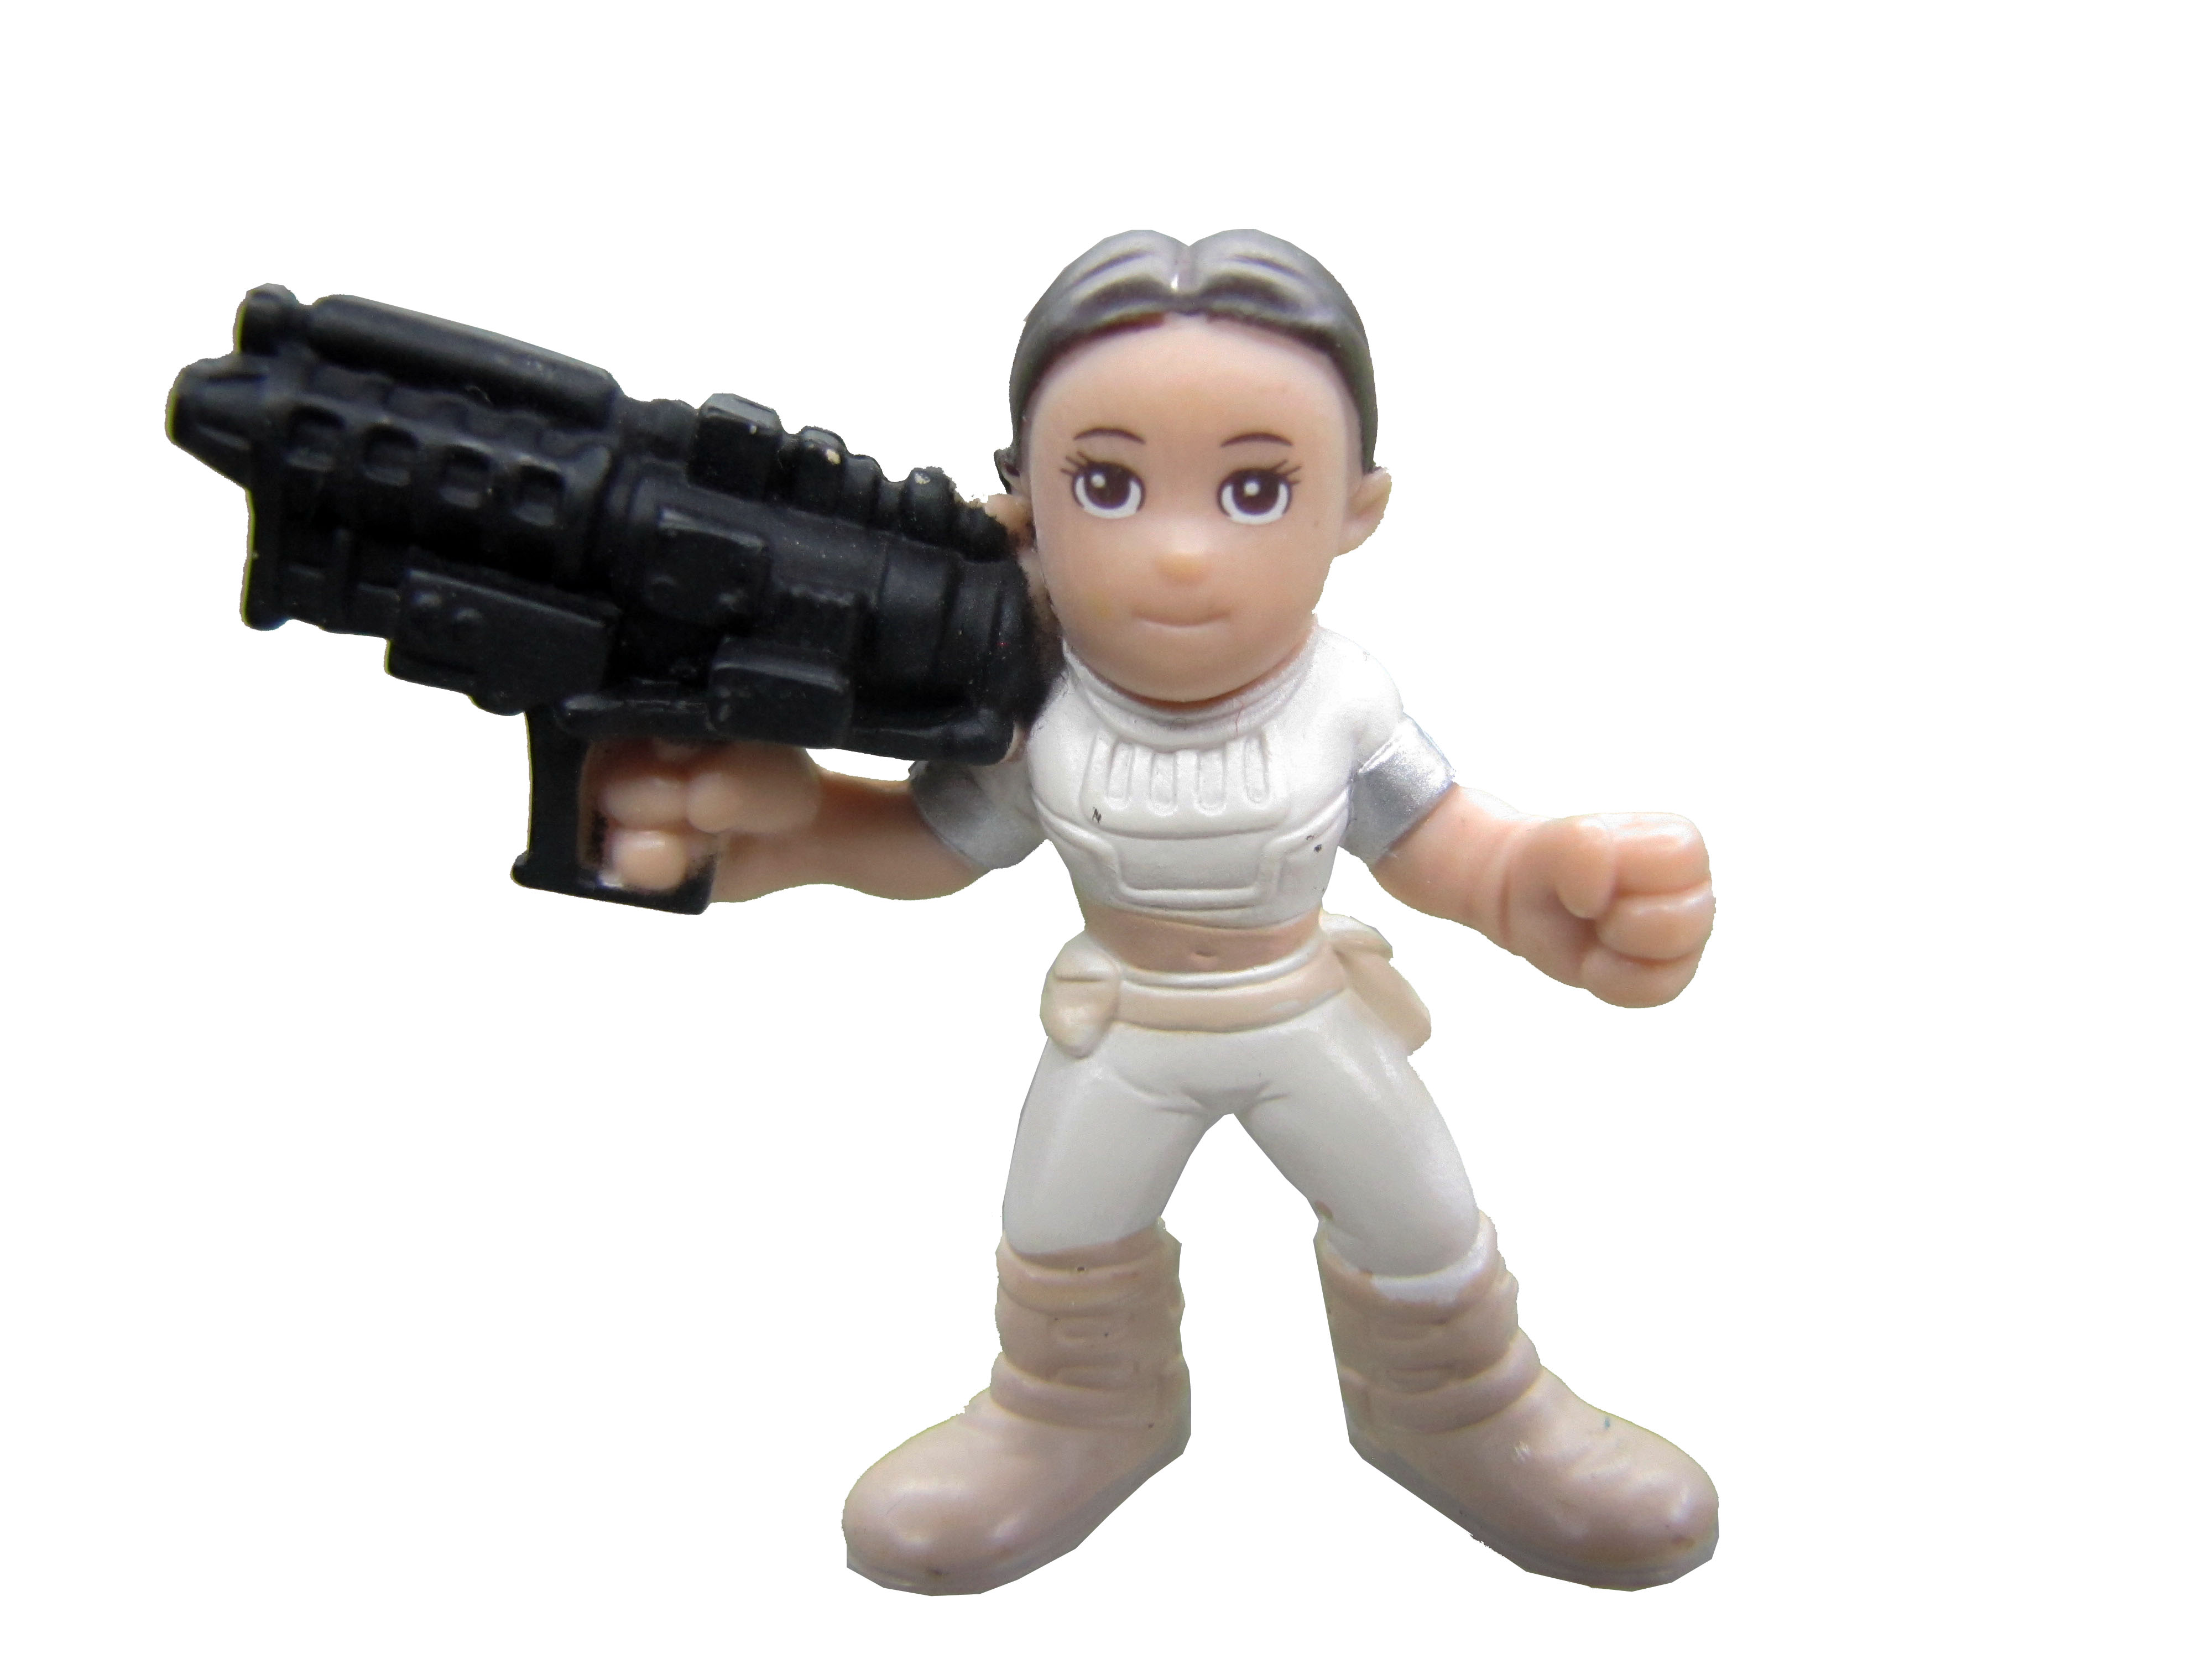 Star Wars Galactic Heroes Padme Amidala Battle of Geonosis